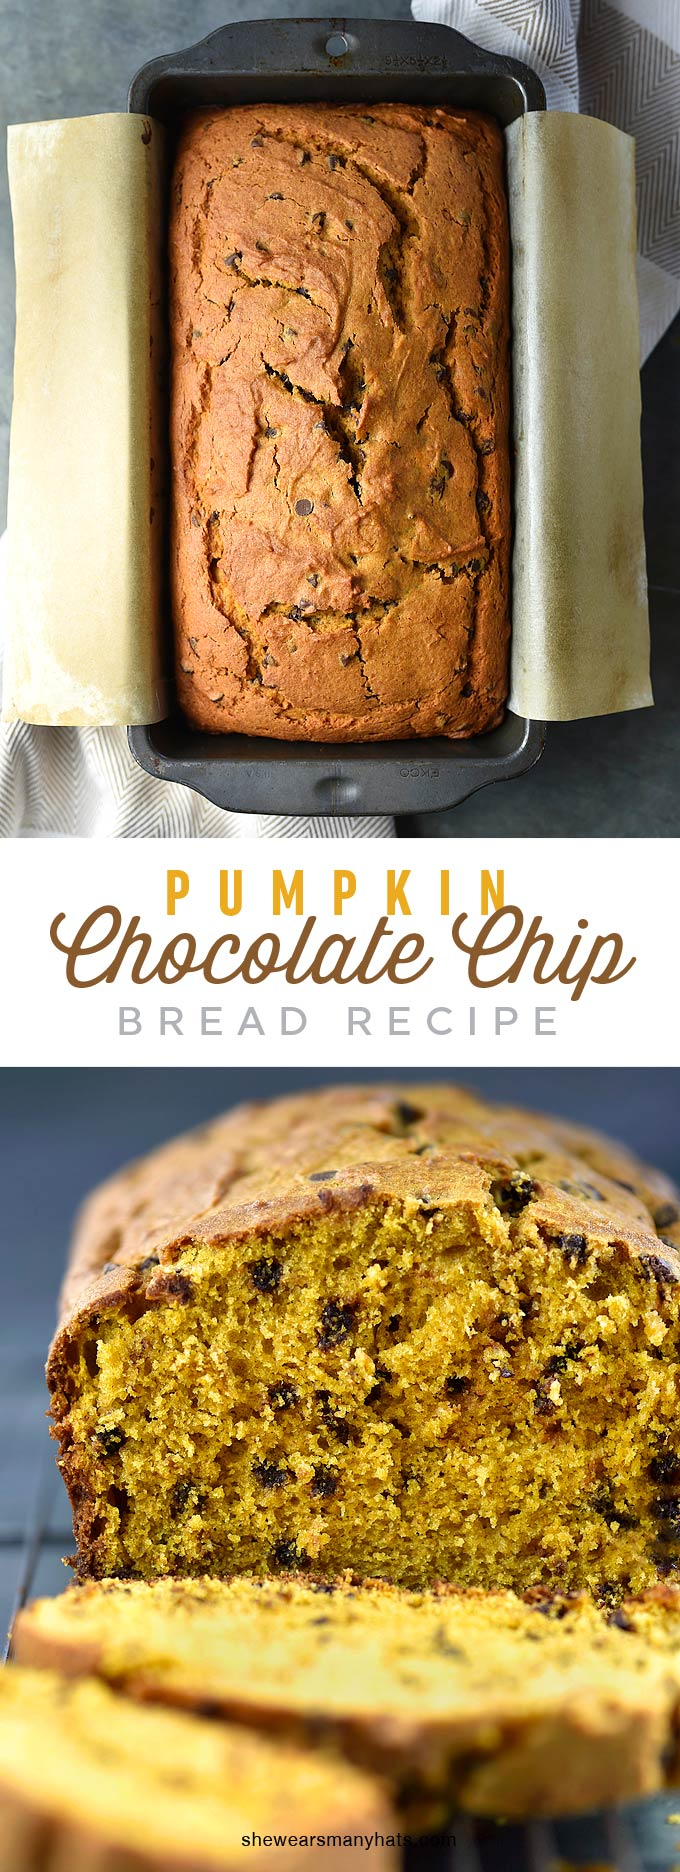 Pumpkin Chocolate Chip Bread Recipe | shewearsmanyhats.com